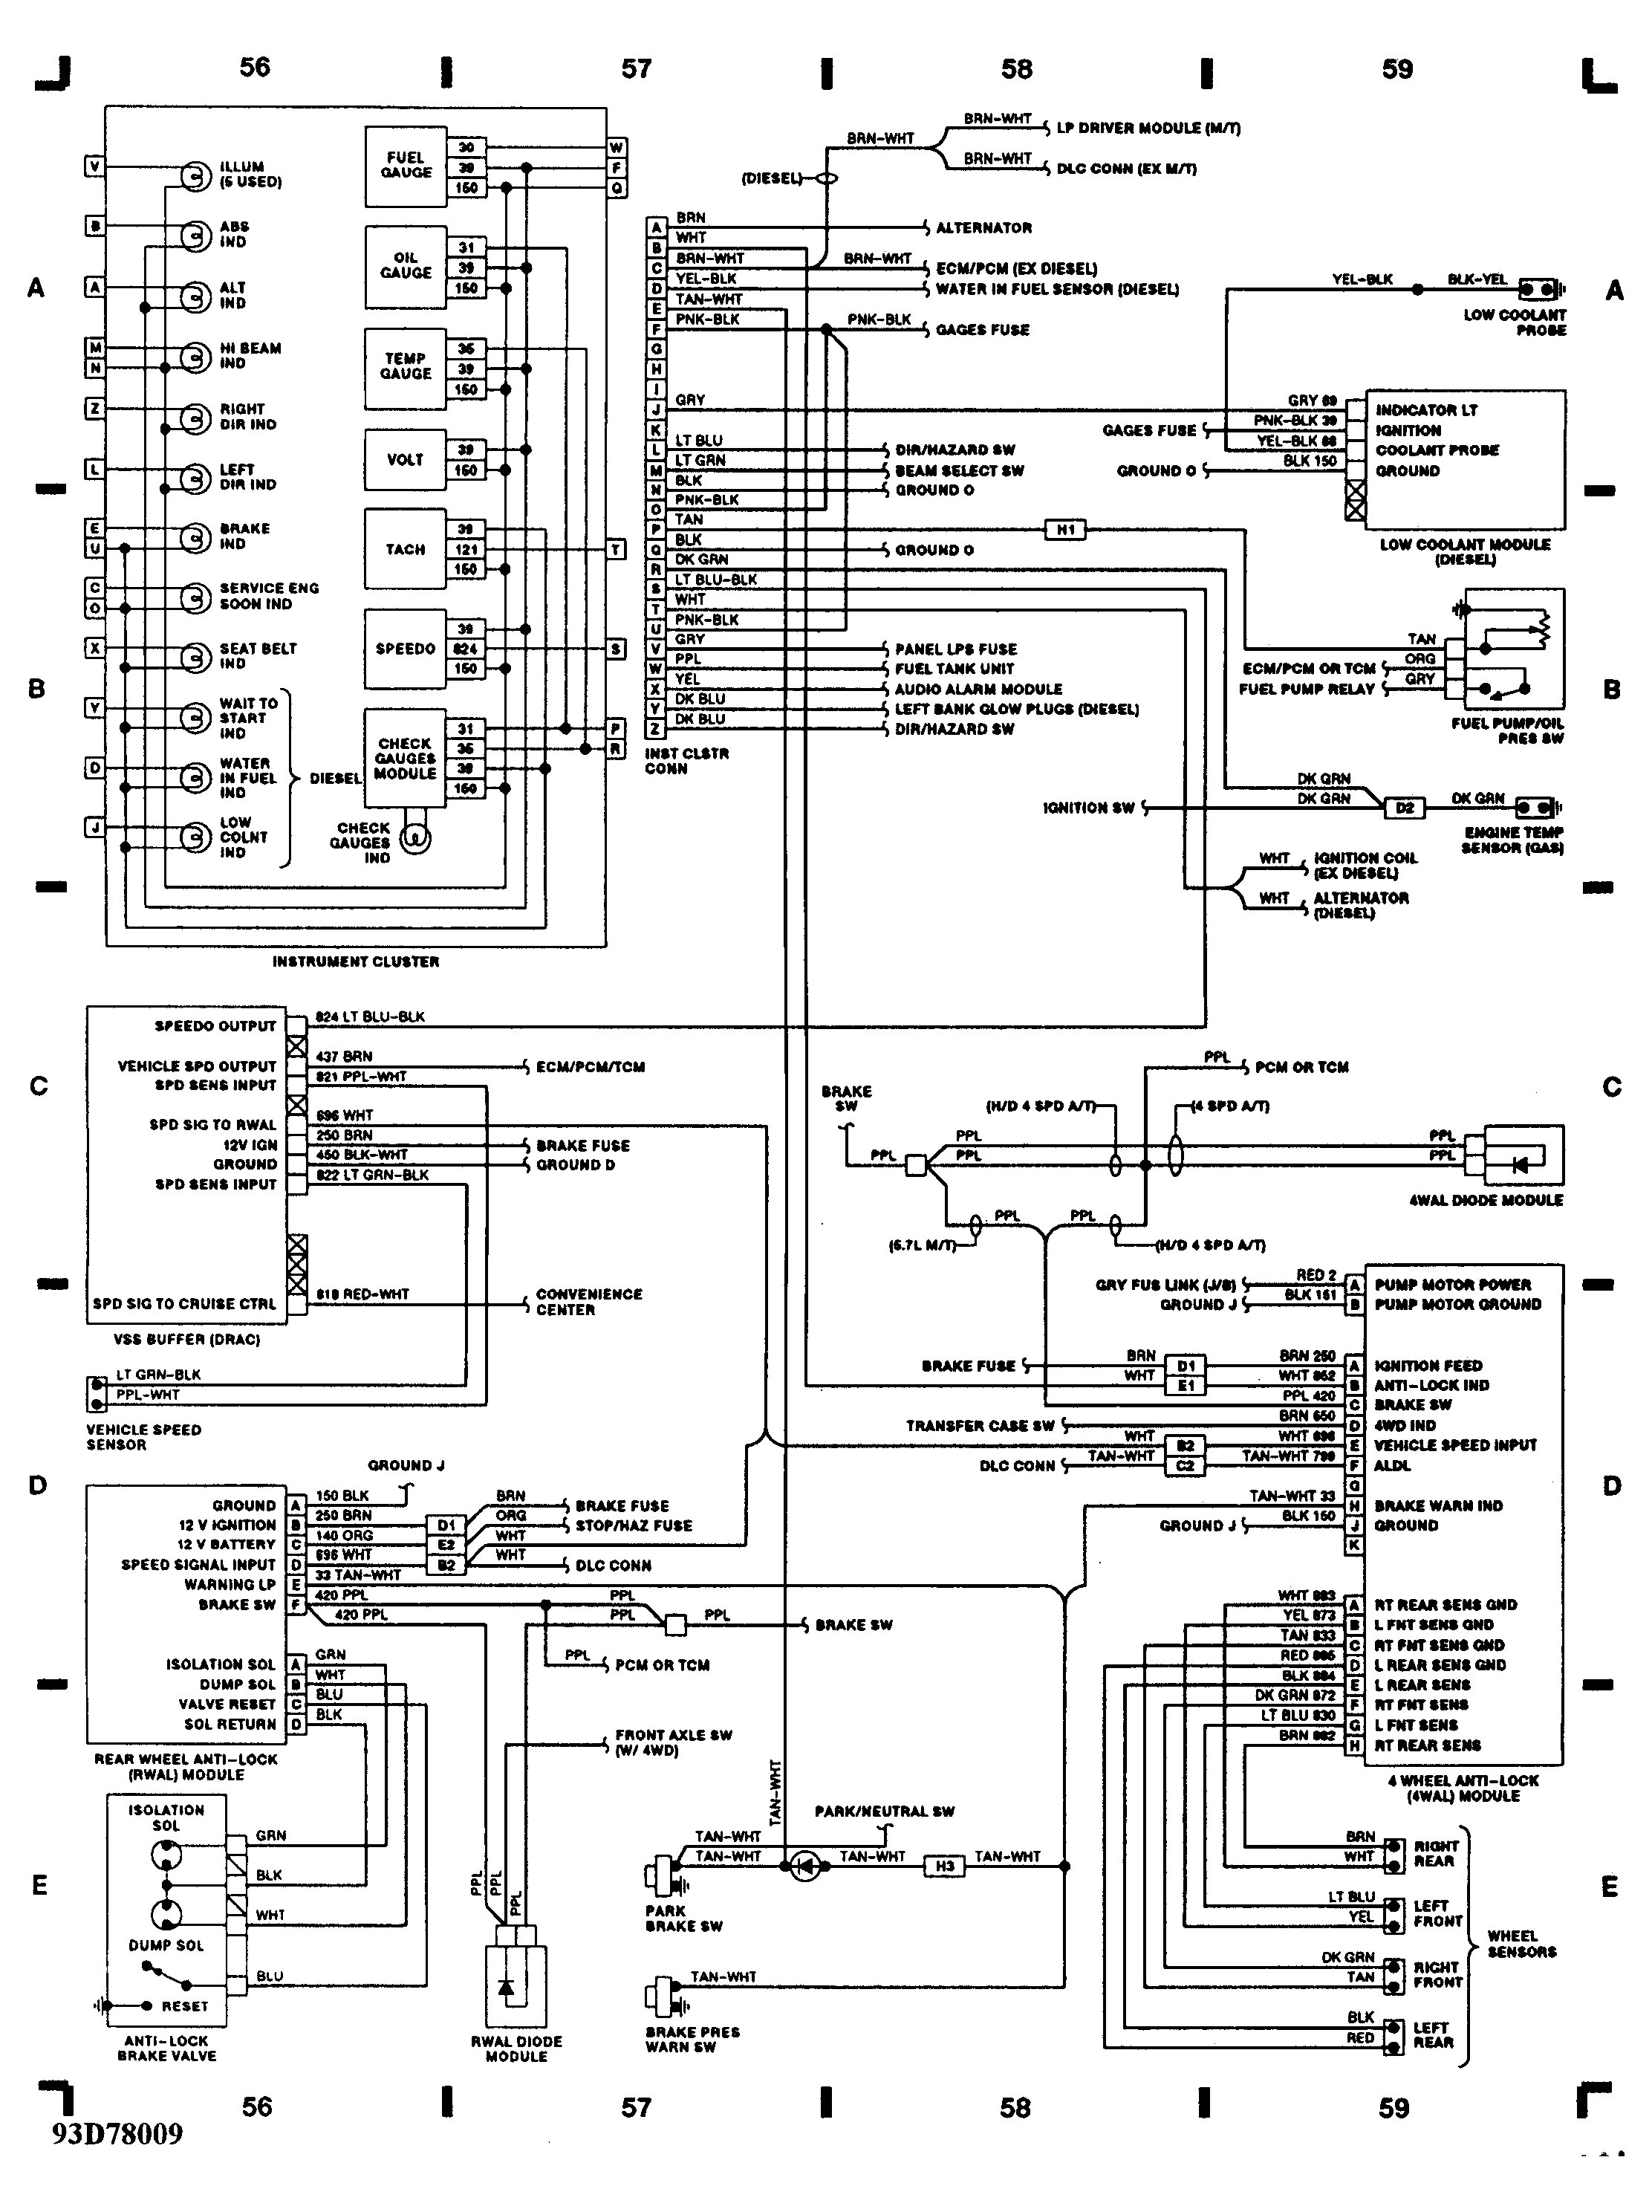 5 7 Liter Chevy Engine Diagram 2 My Wiring Lfx Harness Vortec Unique I Have A 93 Silverado With Od Automatic Transmission And L